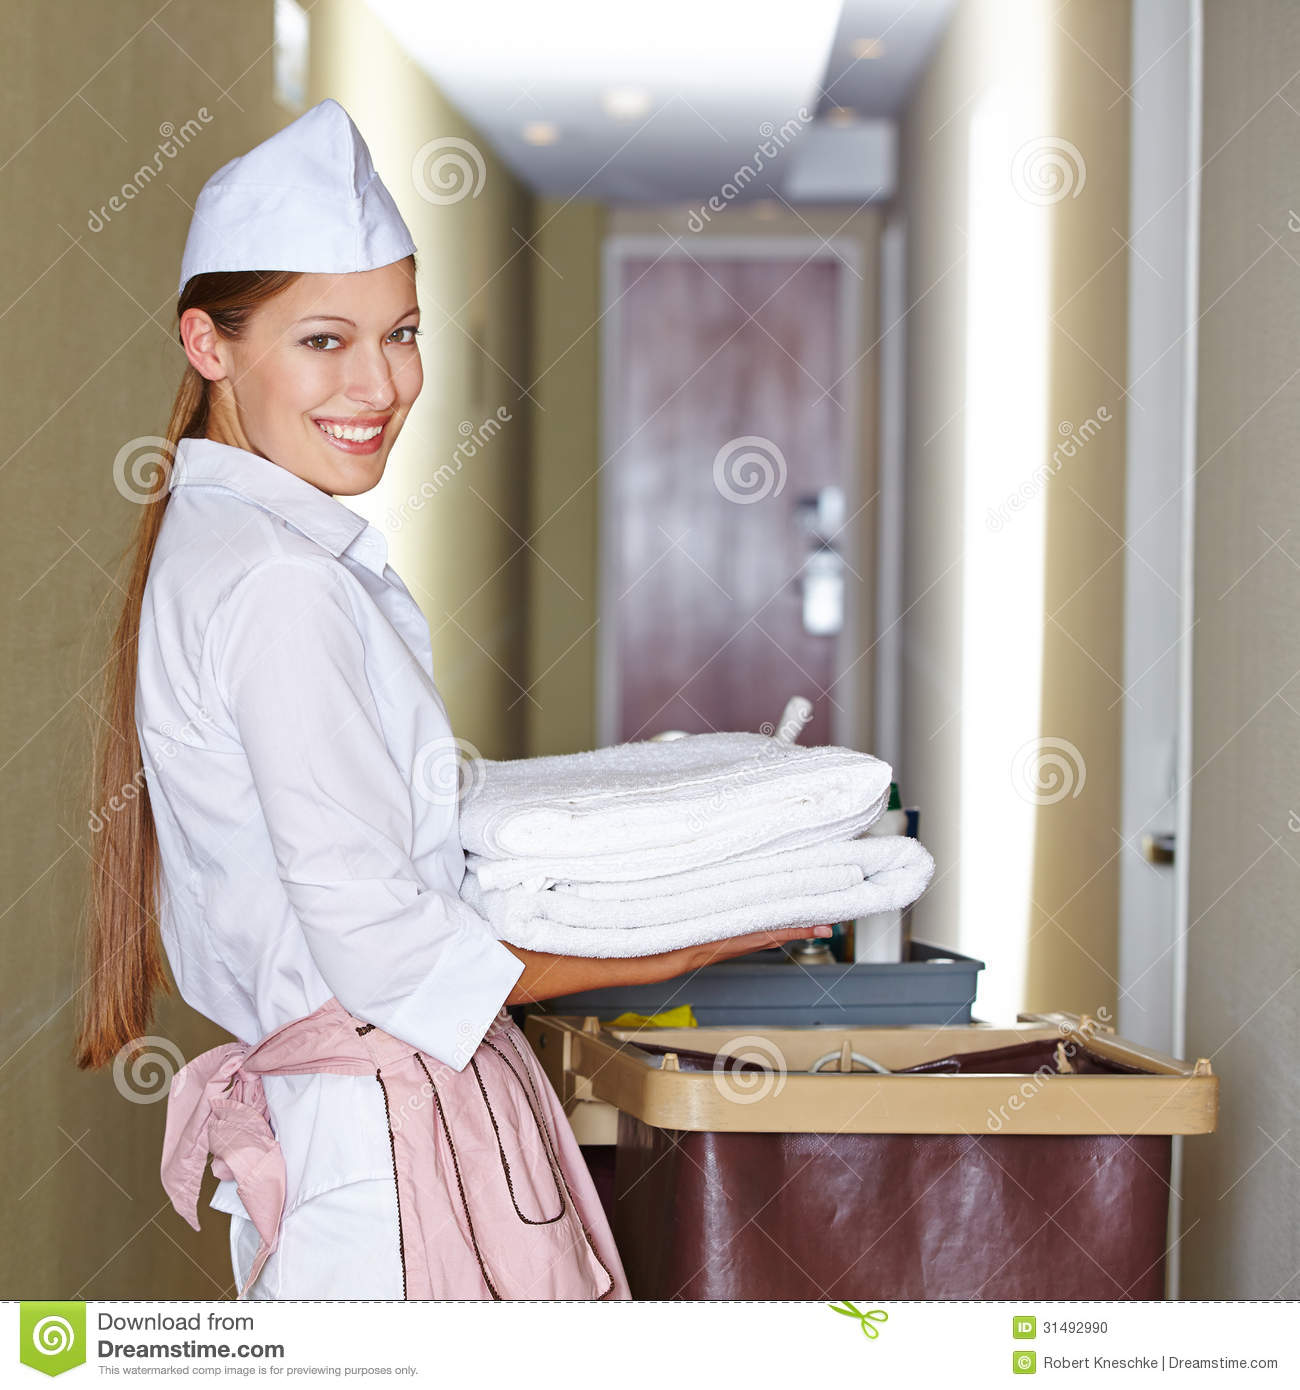 Hotel Maid Doing Housekeeping Stock Photo - Image: 31492990